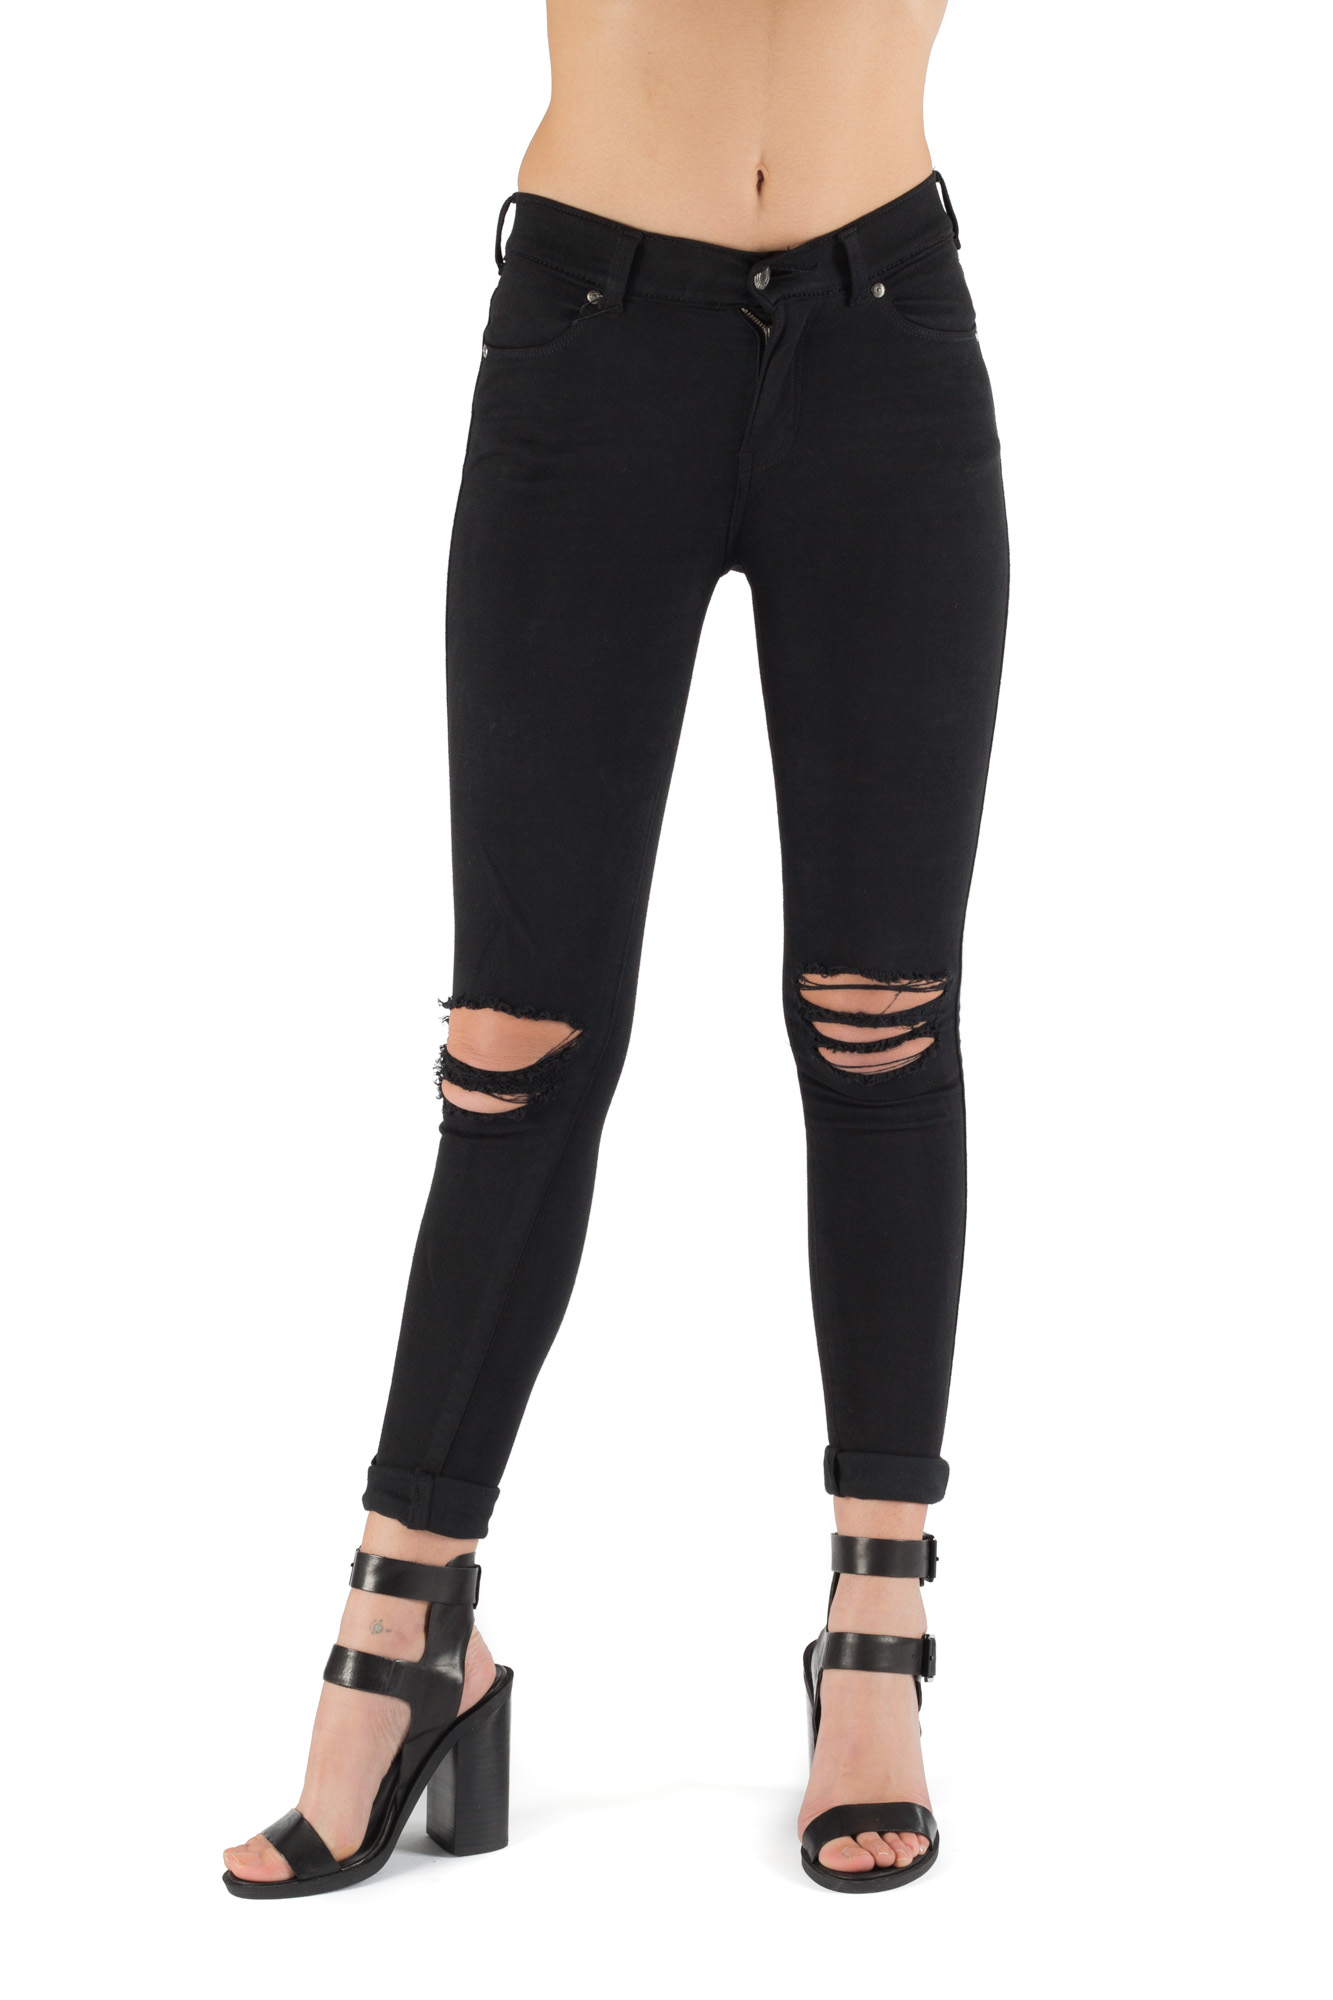 Dr. Denim - High waist skinny jeans with ripped knees